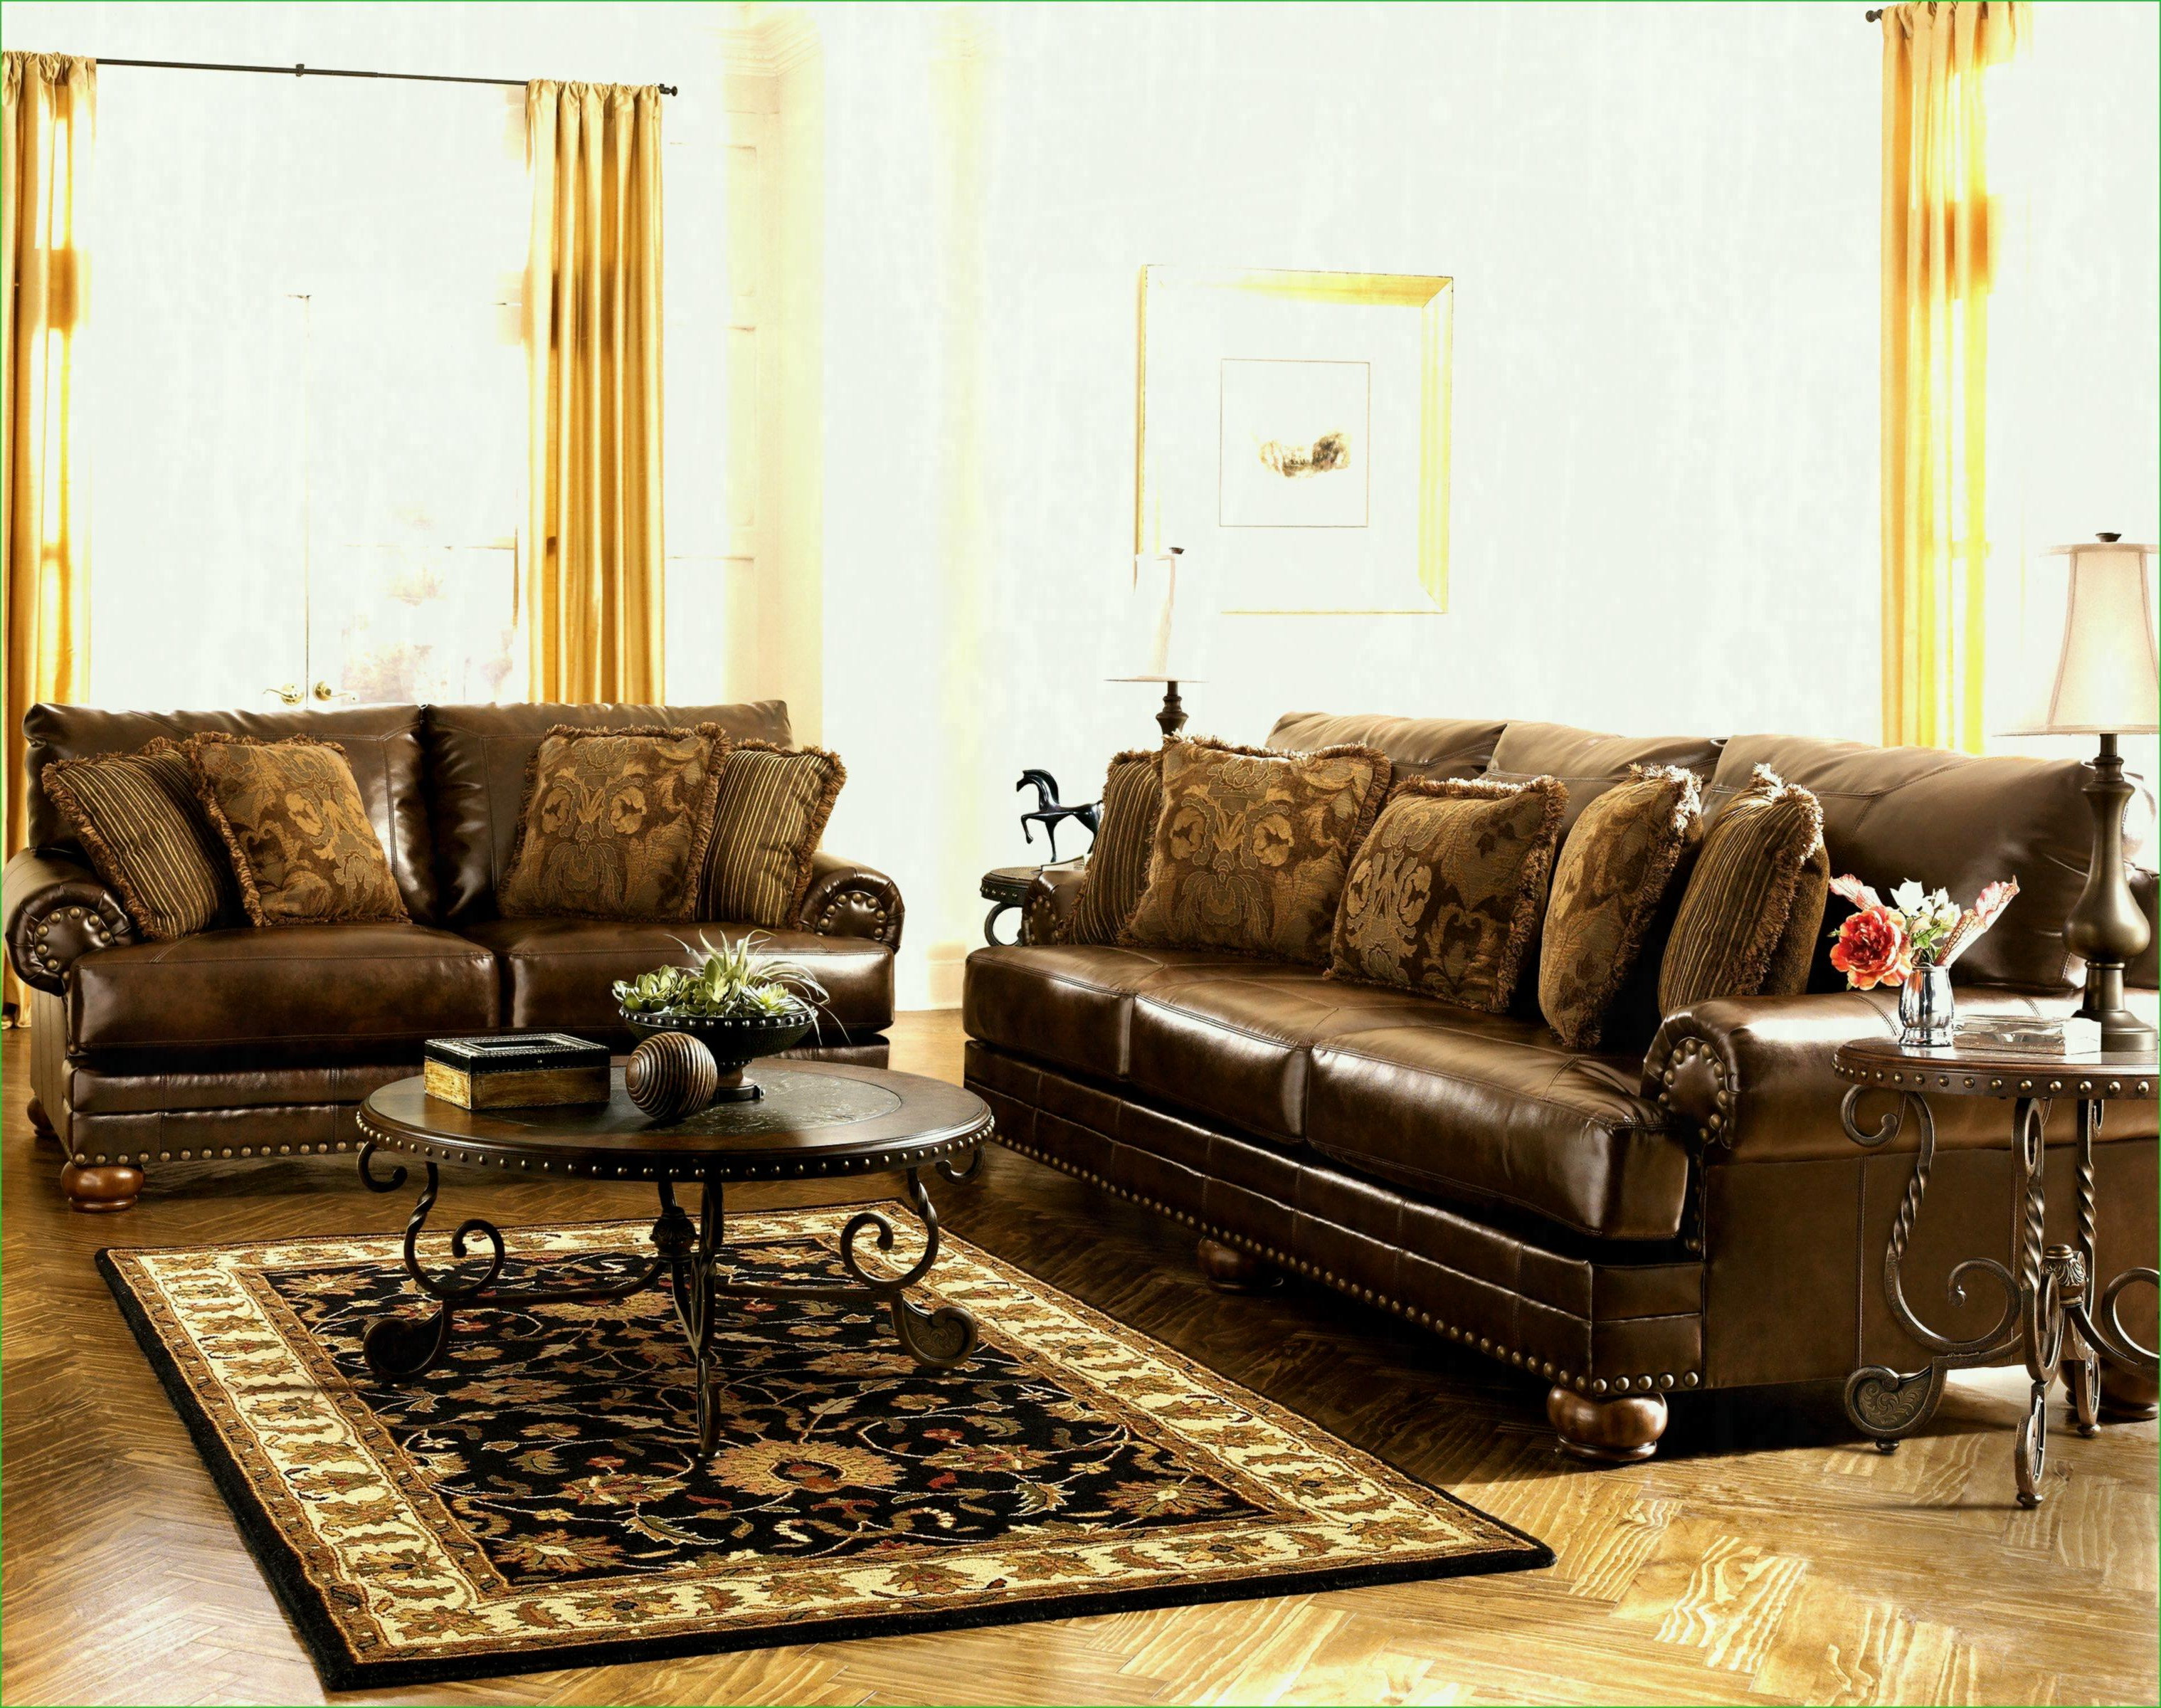 Trendy Mcculla Sofa Sectionals With Reversible Chaise With Ashley Furniture Small Sectional Sofas Discount Pitkin Motorized (View 18 of 20)